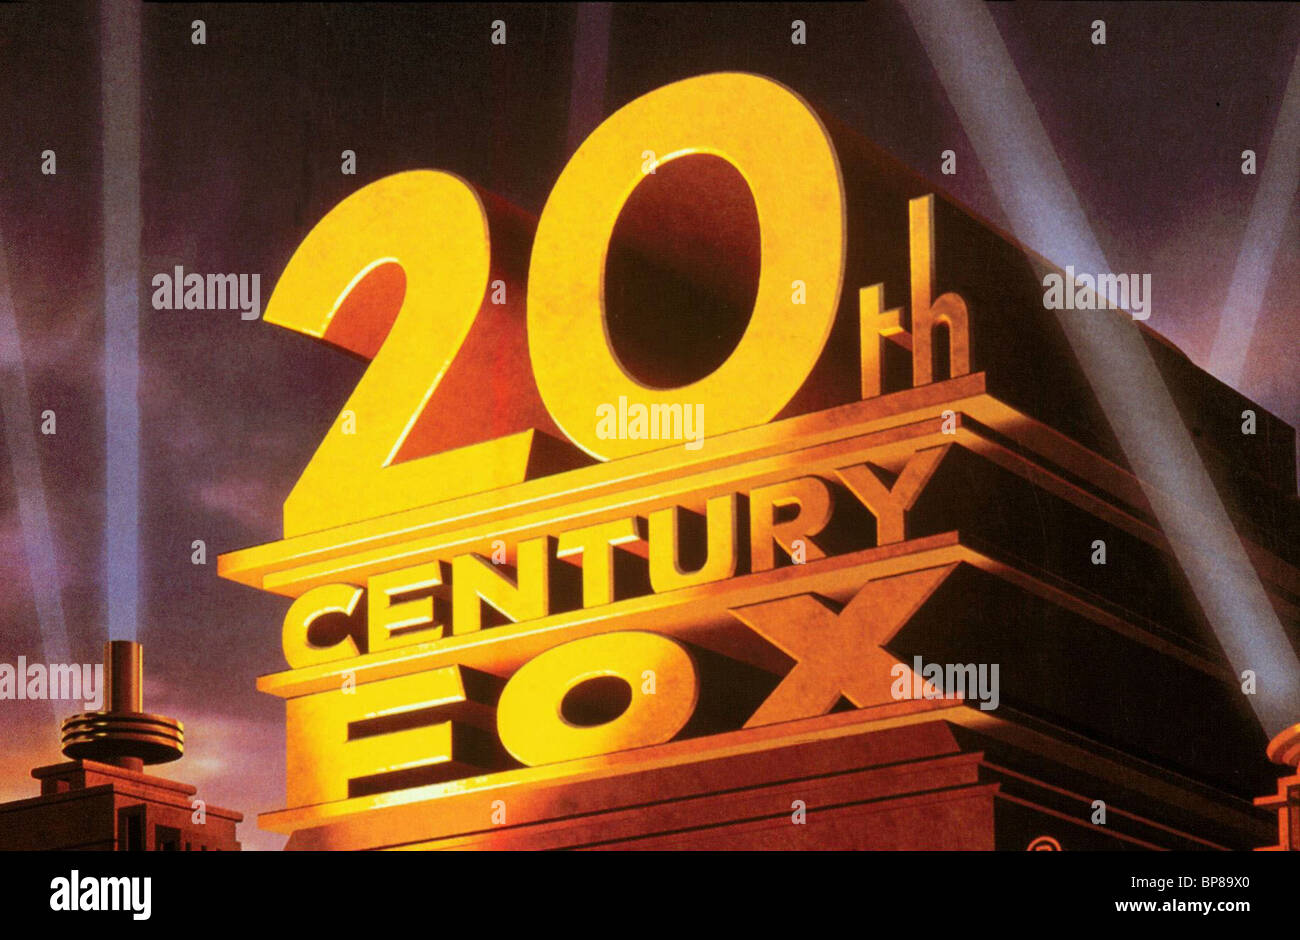 http://c7.alamy.com/comp/BP89X0/20th-century-fox-logo-20th-century-fox-1970-BP89X0.jpg